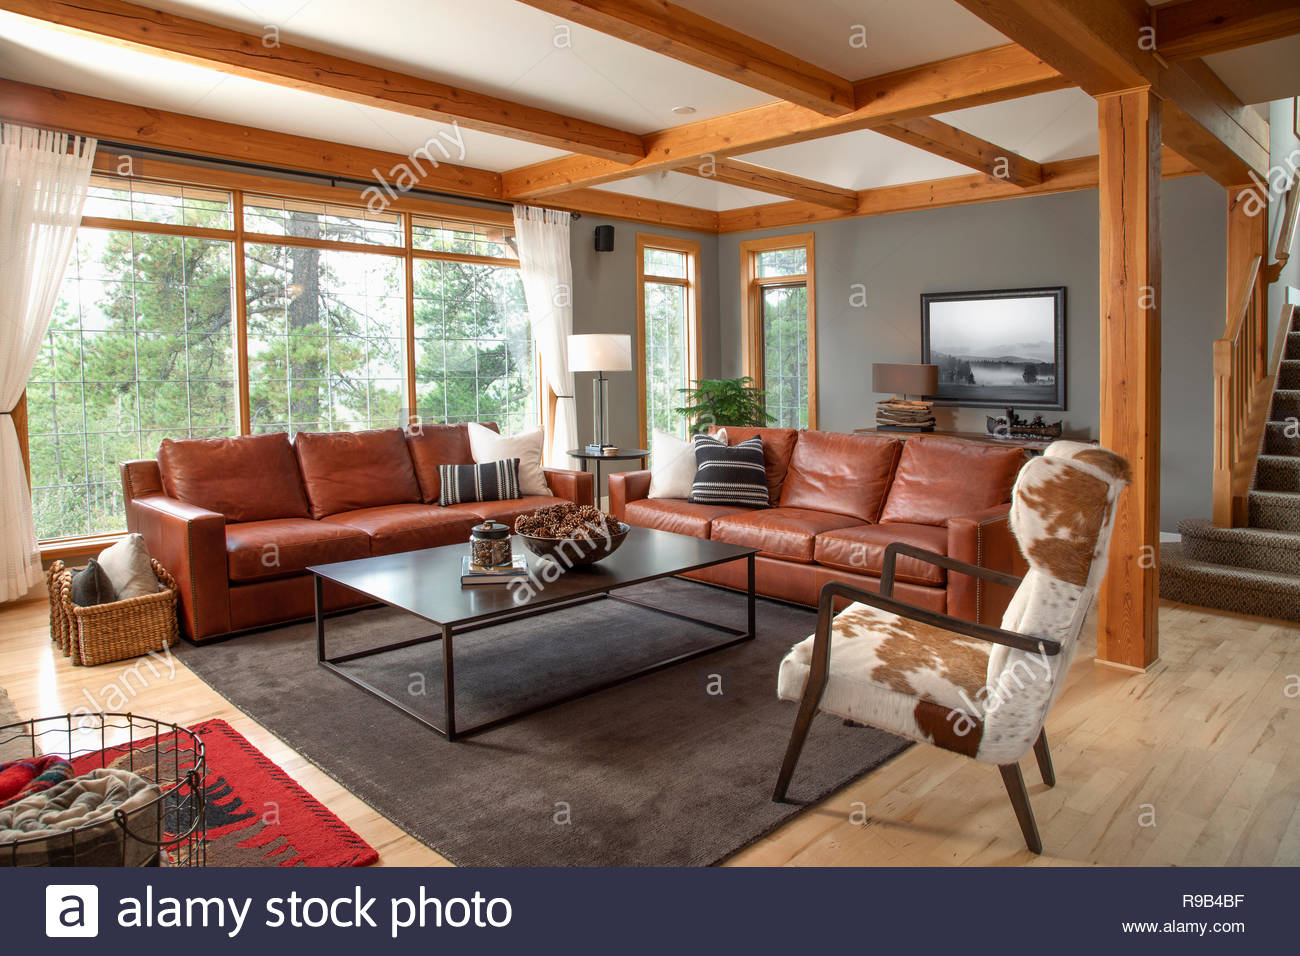 Home showcase interior living room with leather sofas and ...